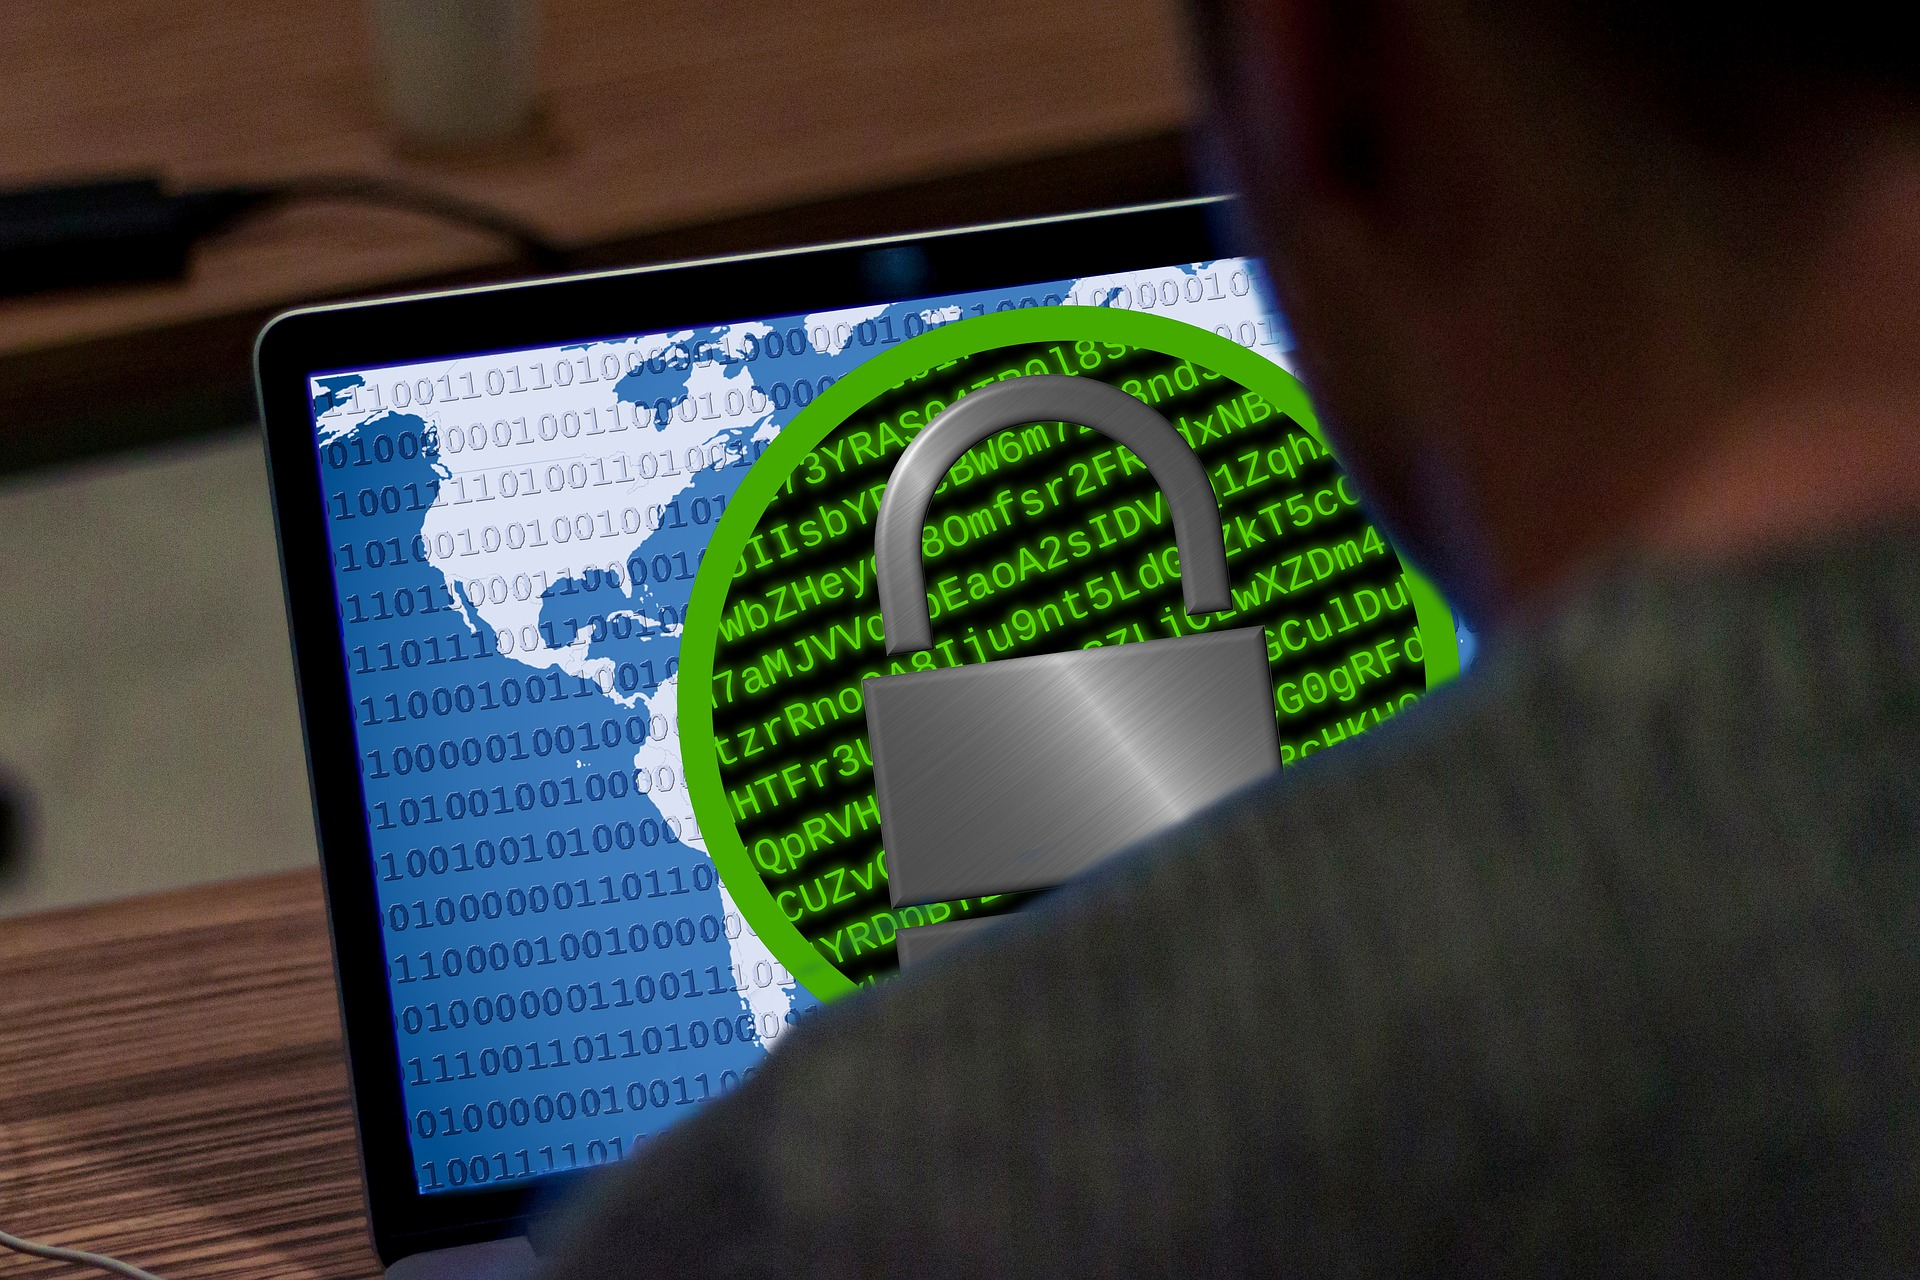 Ransomware attack has infected US data center provider